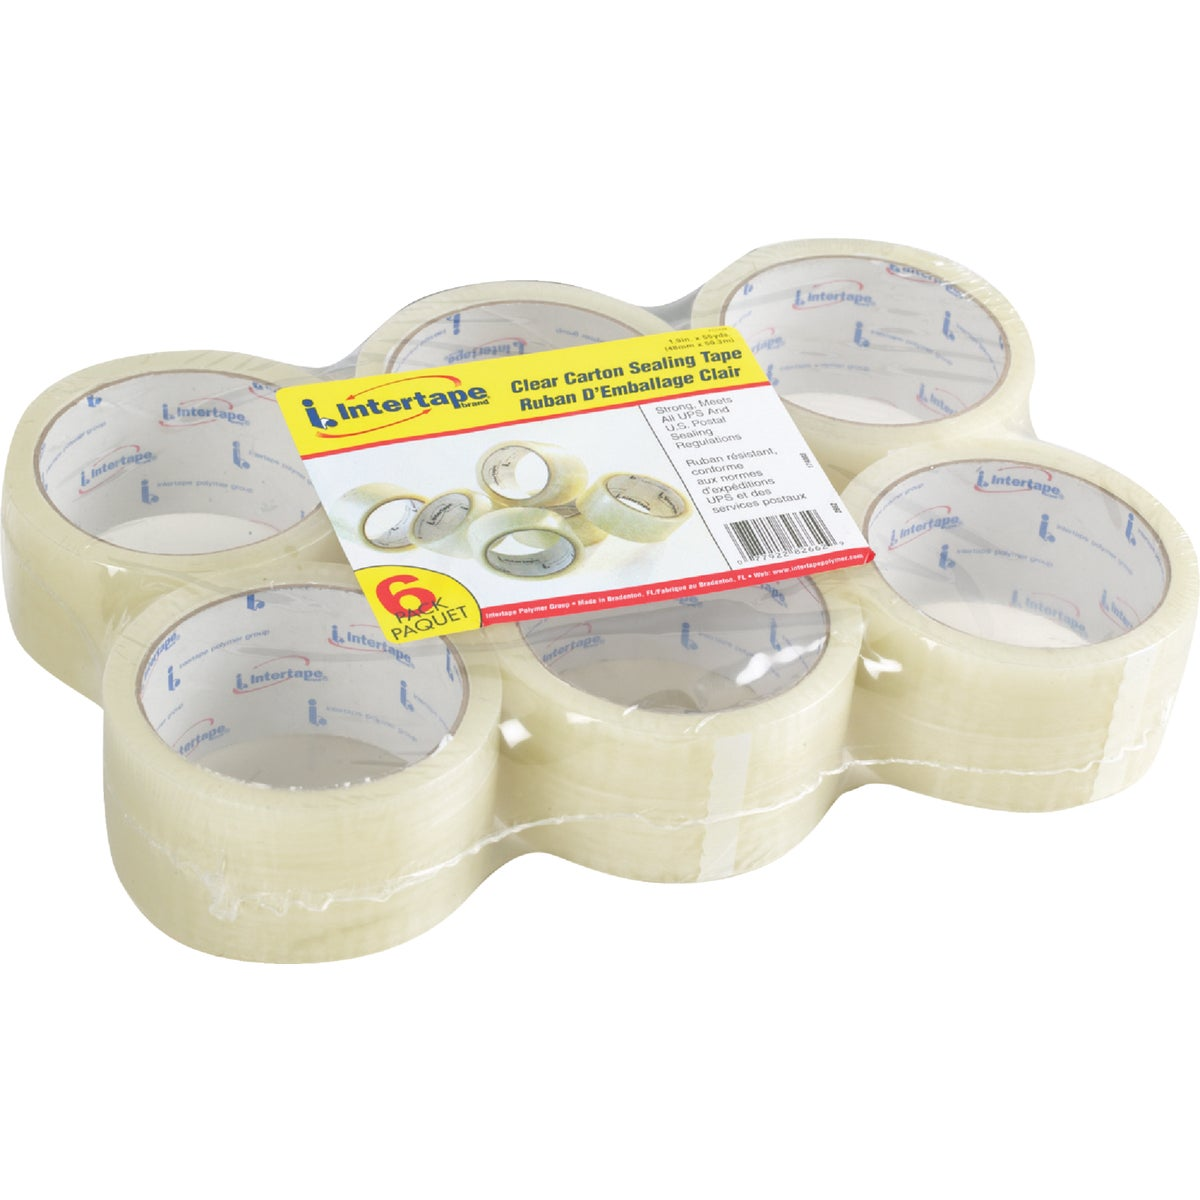 6PK 48MMX55YD CLEAR TAPE - 2662 by Intertape Polymer